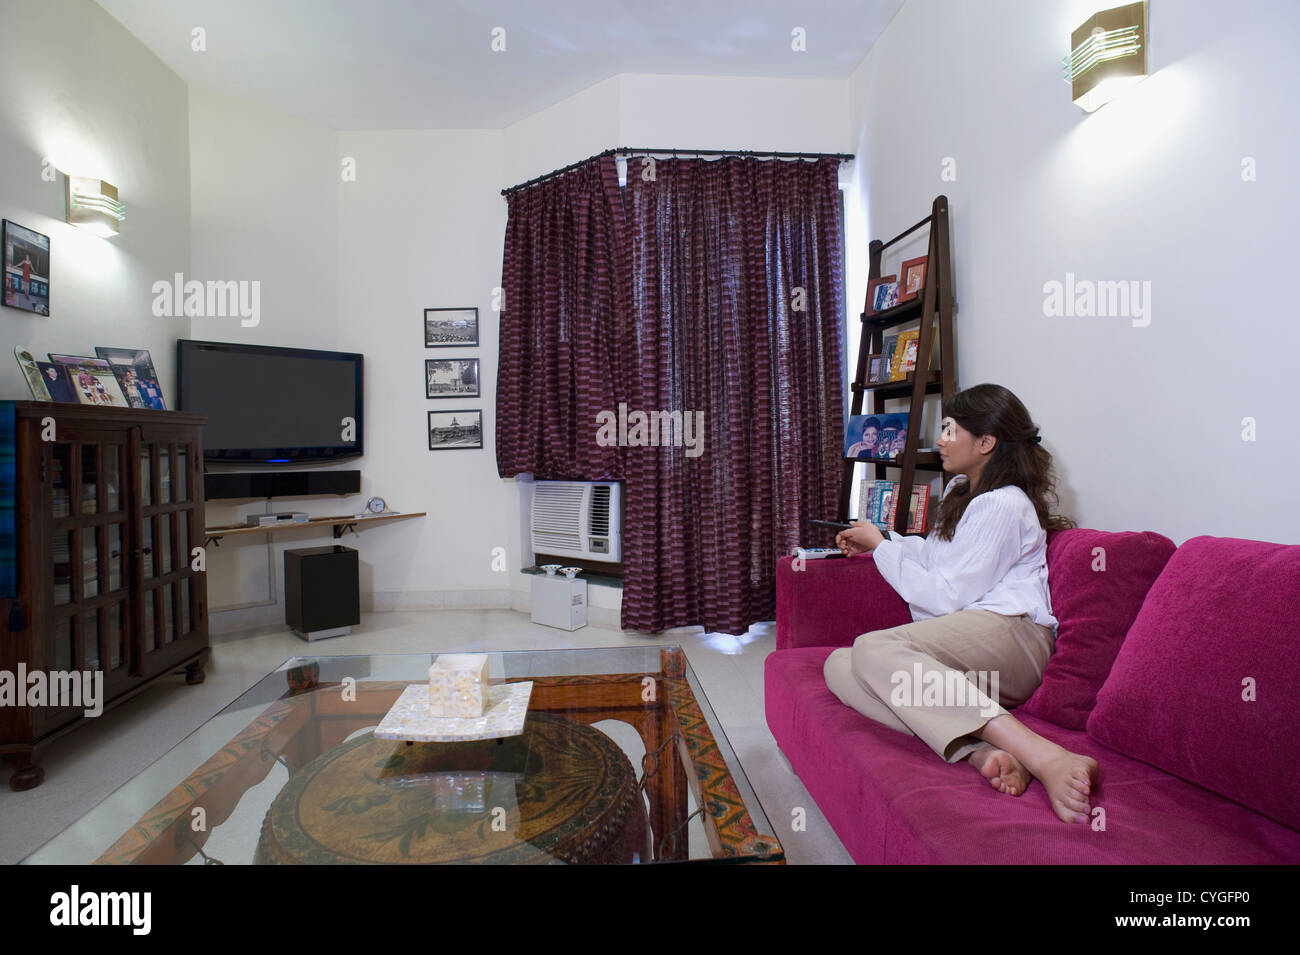 Woman Sitting On A Couch In A Living Room   Stock Image